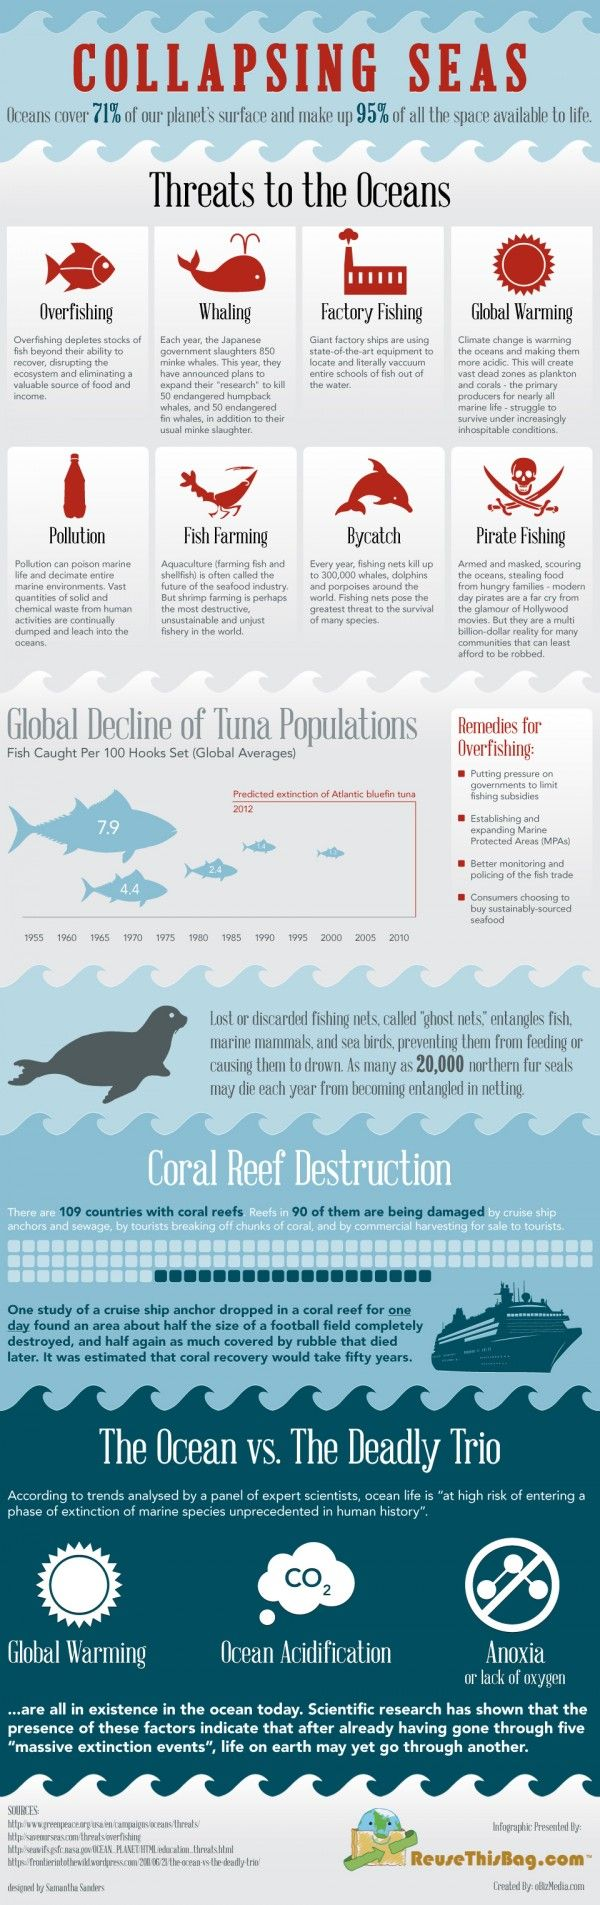 This pin uses a perfect depiction of color because the boldness of the red font is alarming. It easily catches your attention against the blue hues and white on the infographic. The blue is very suiting for the theme of the infographic: The ocean.